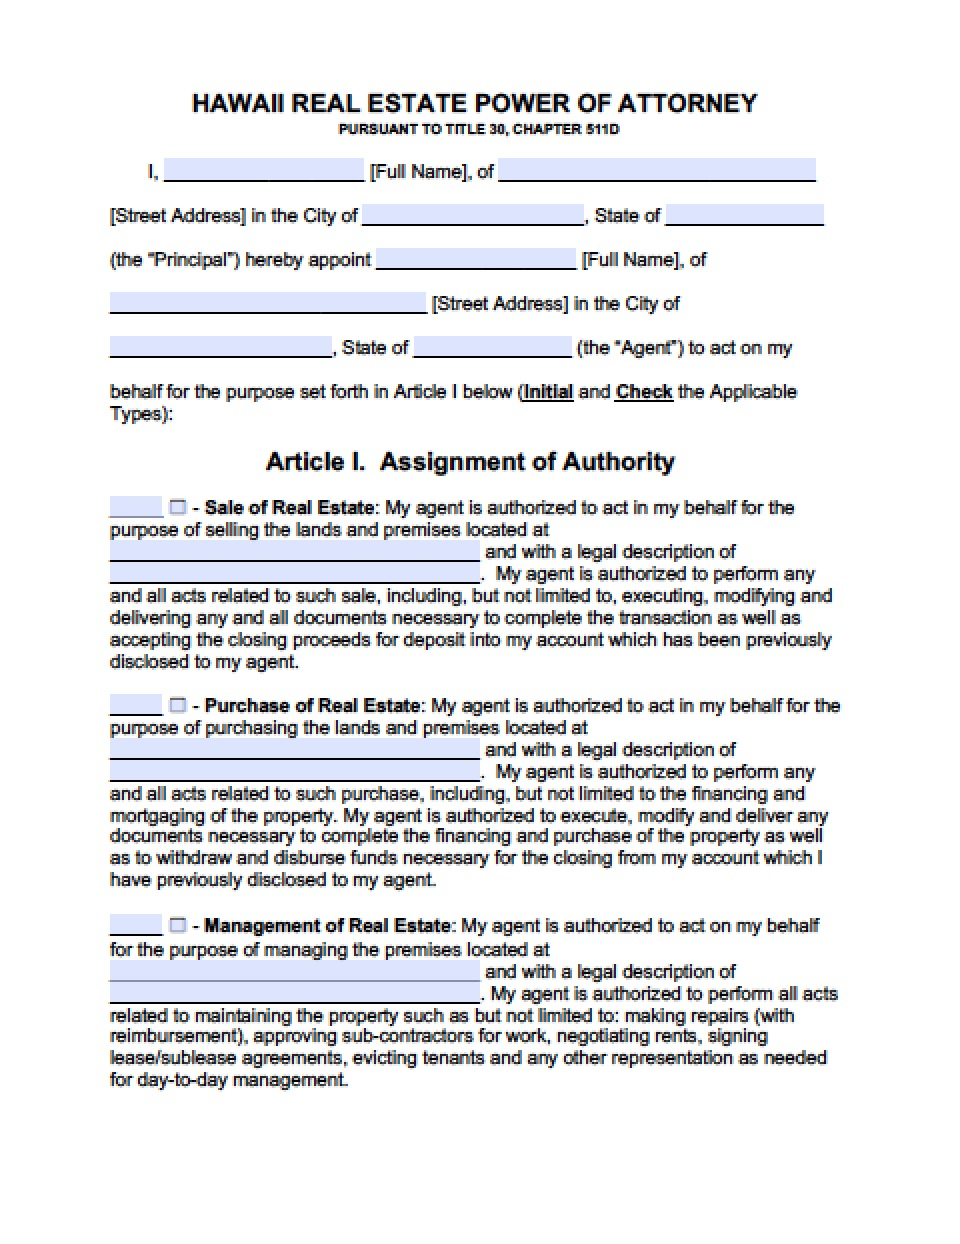 Hawaii Statutory Durable Power Of Attorney Form